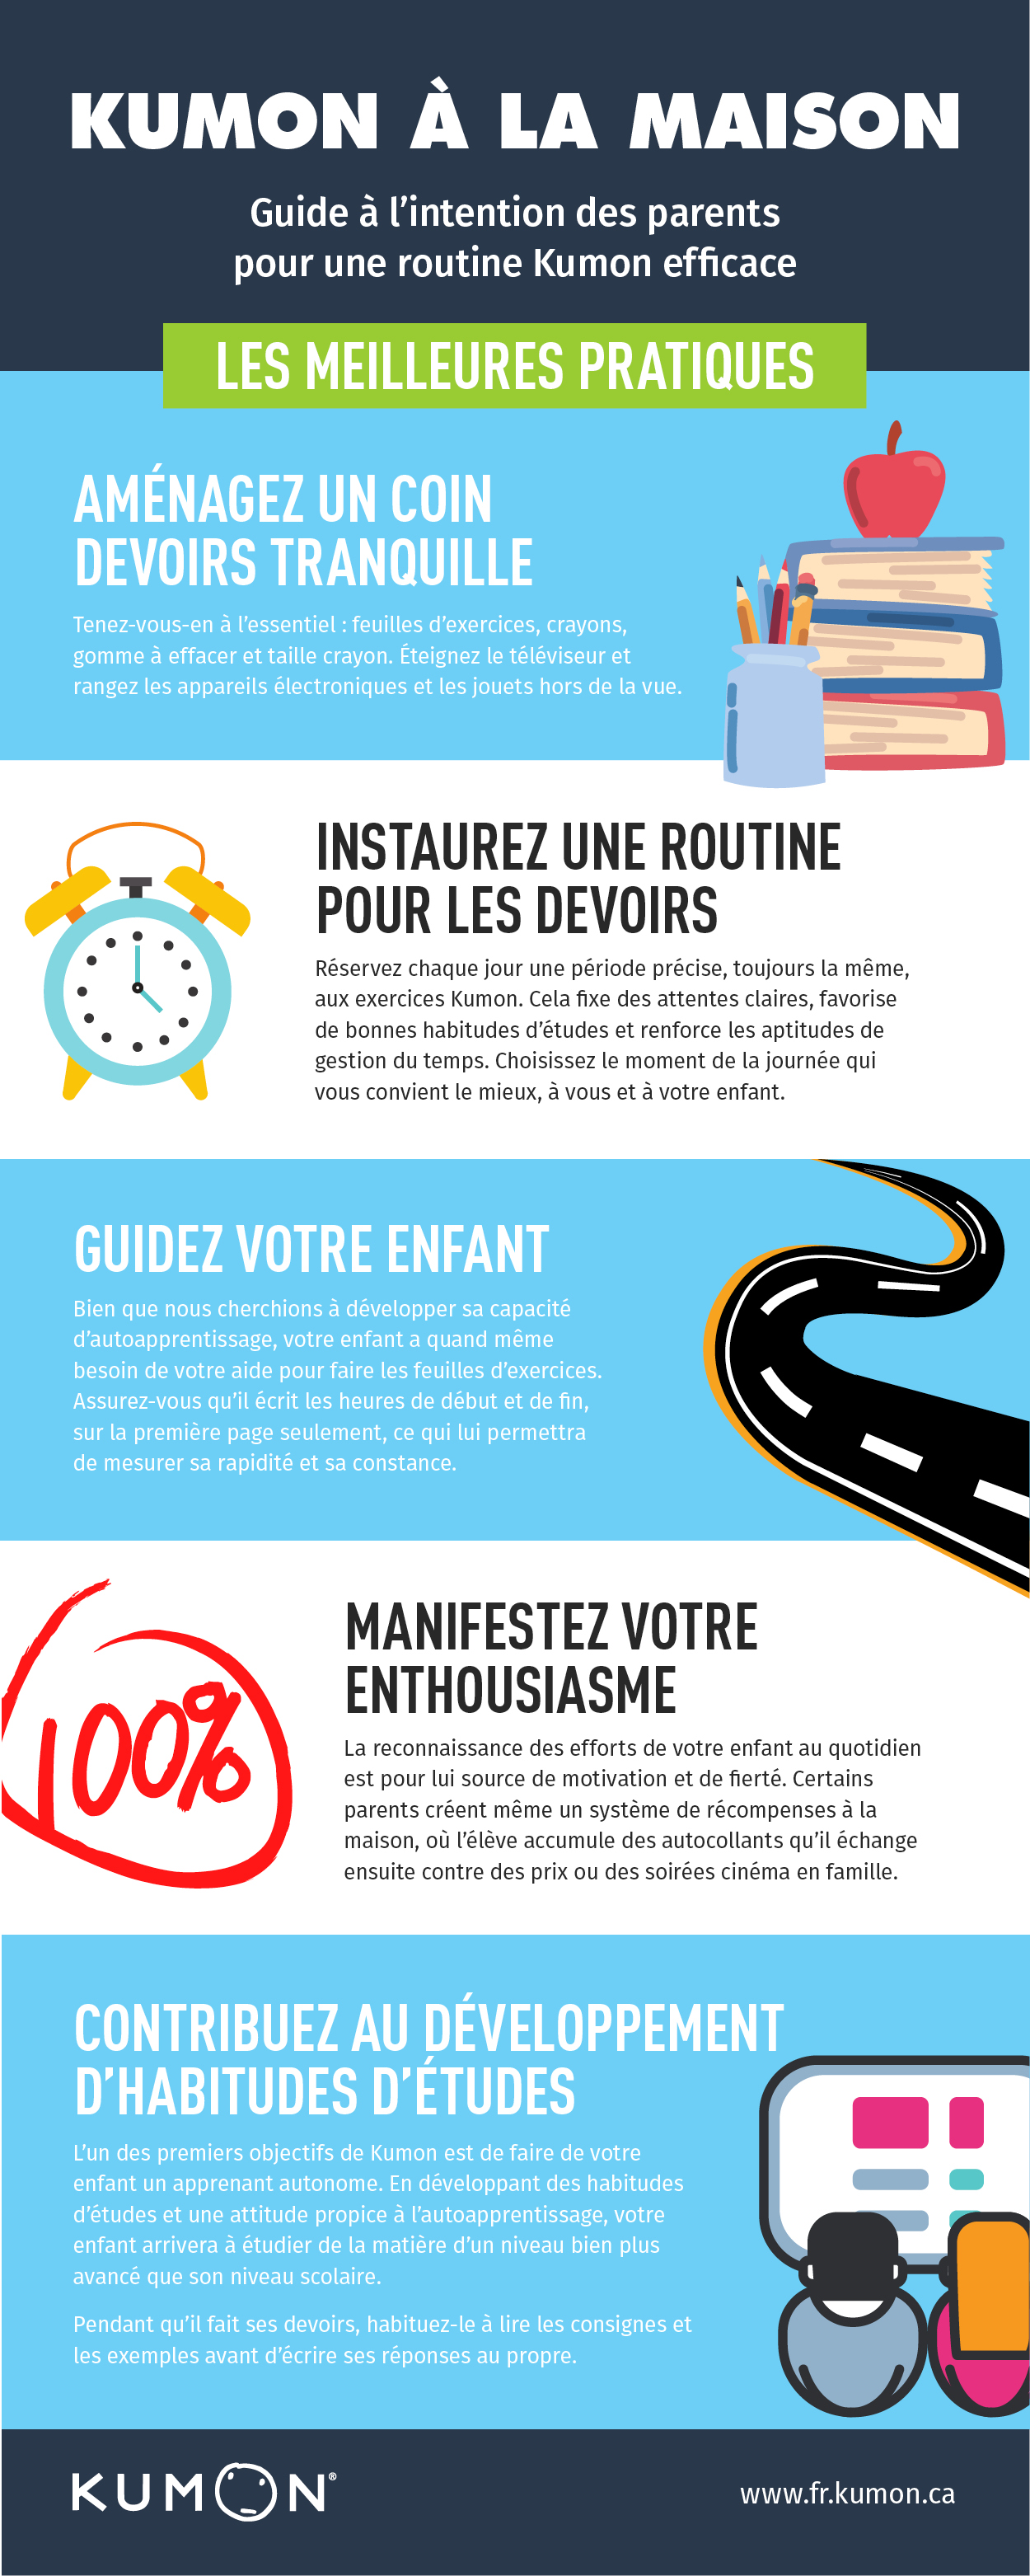 Guide à l'intention des parents pour une routine Kumon efficace